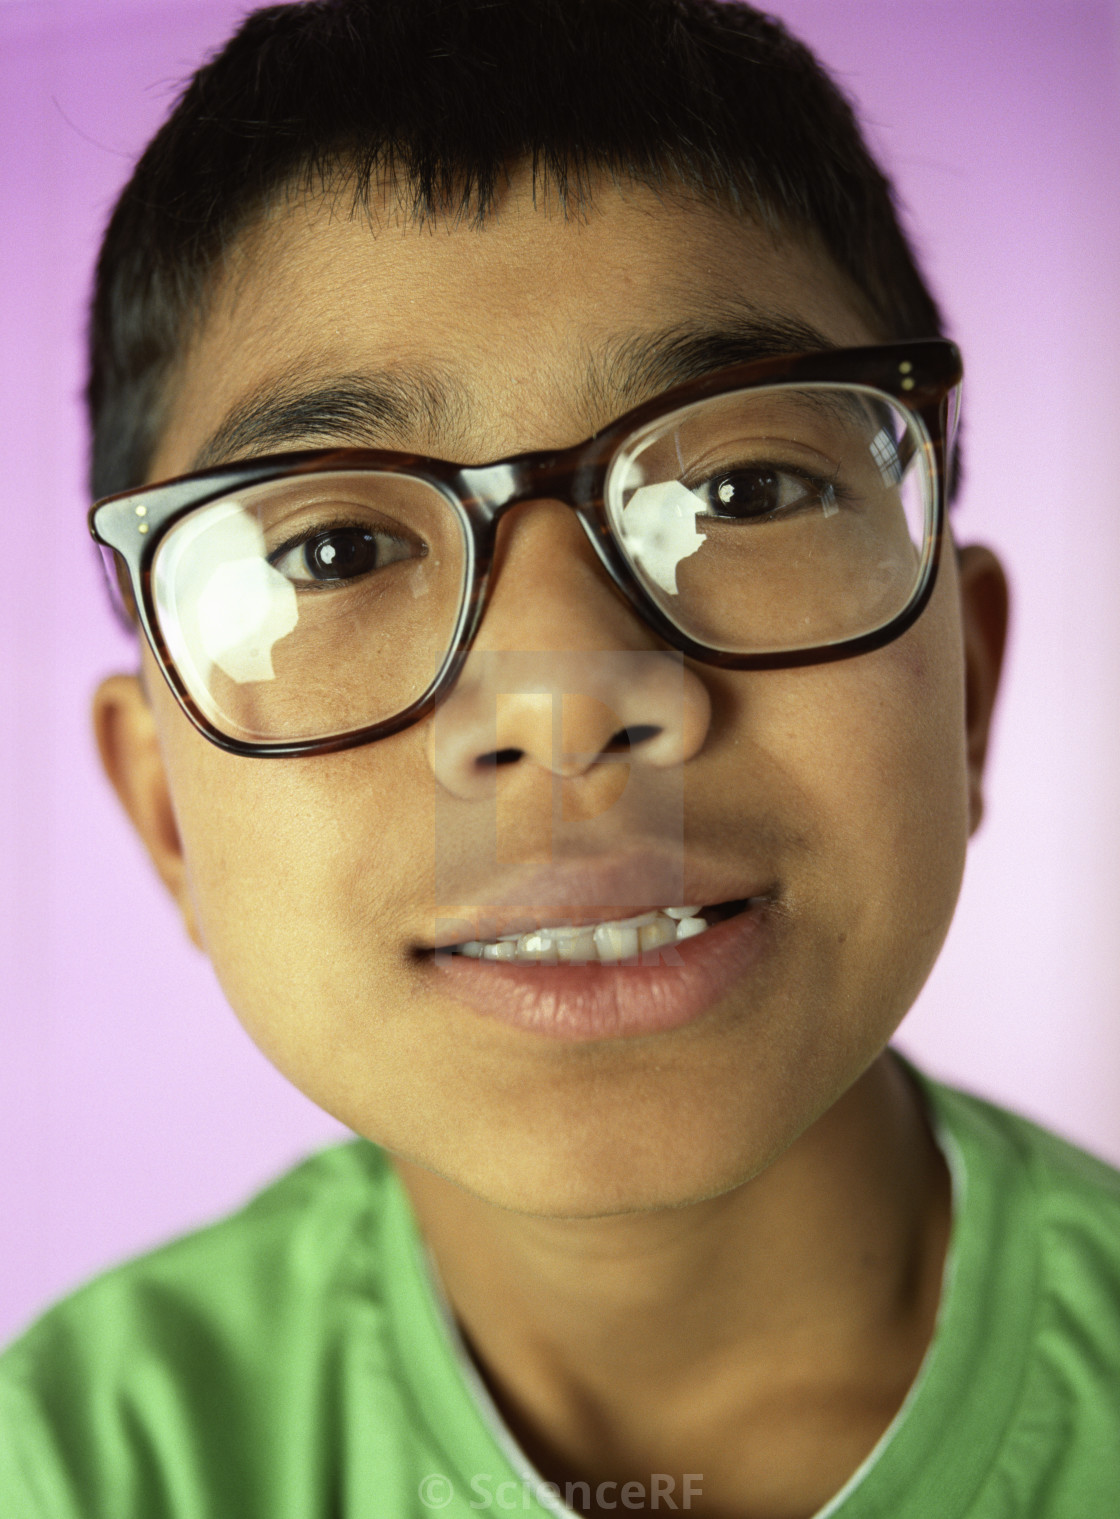 7953612c62bc Boy wearing glasses - License, download or print for £39.00 | Photos ...